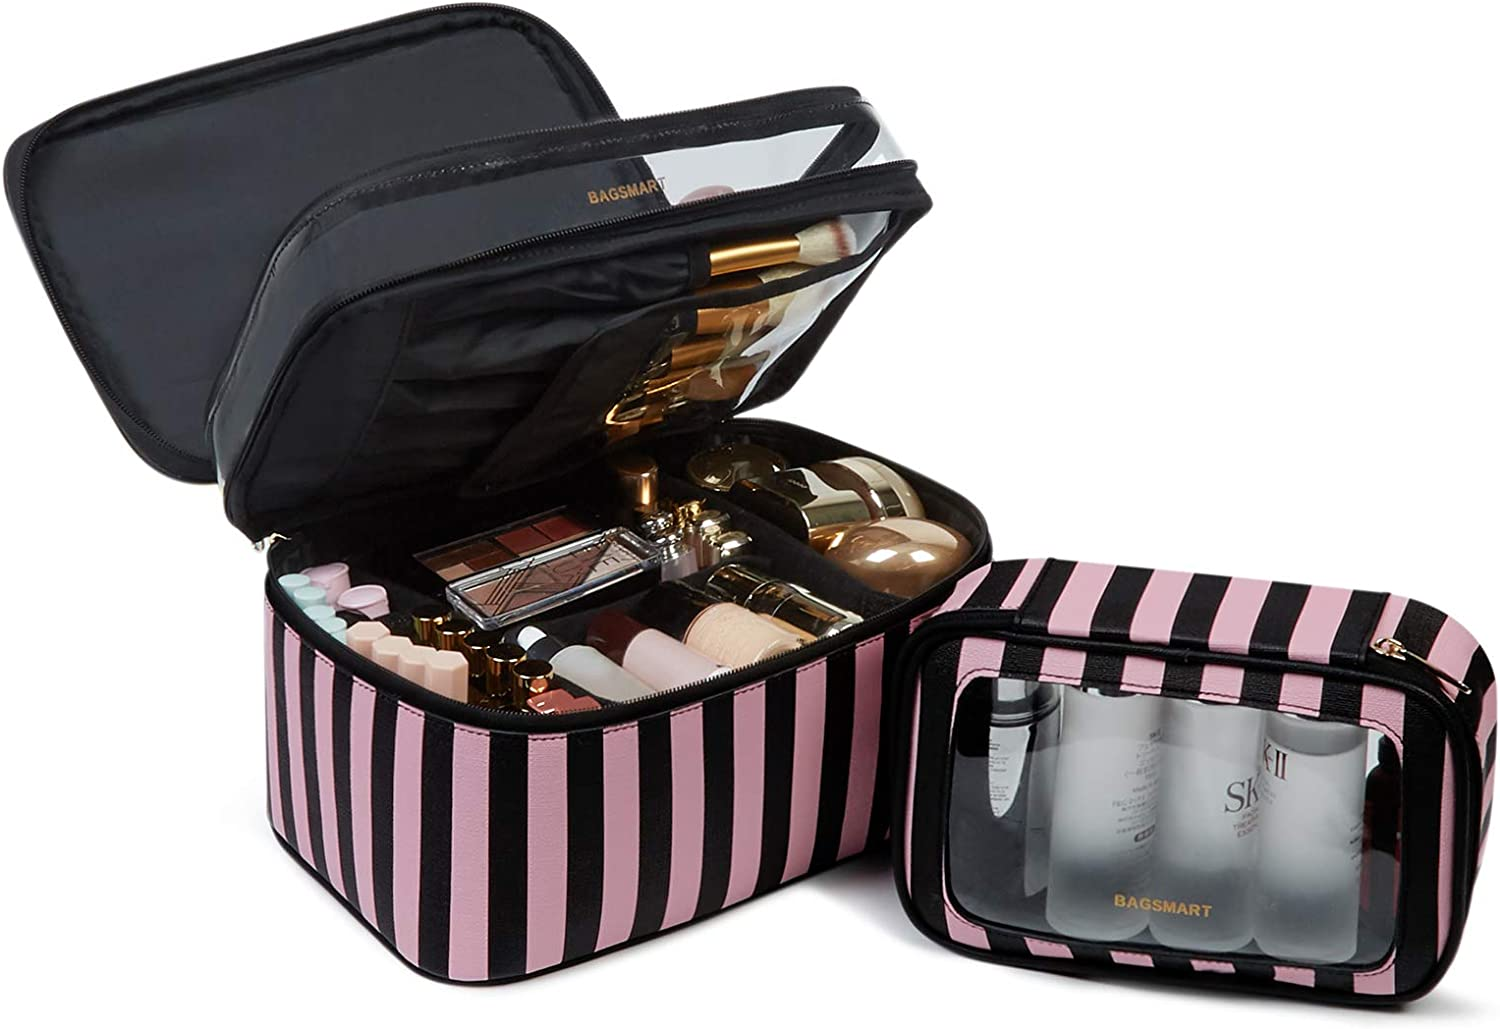 Travel Makeup Bag, BAGSMART Large Cosmetic Bags Double Layer with Adjustable Dividers, Leather Makeup Bags Water-resistant Leather with Portable Clear Travel Makeup Cases, for Makeup, Cosmetics Tools